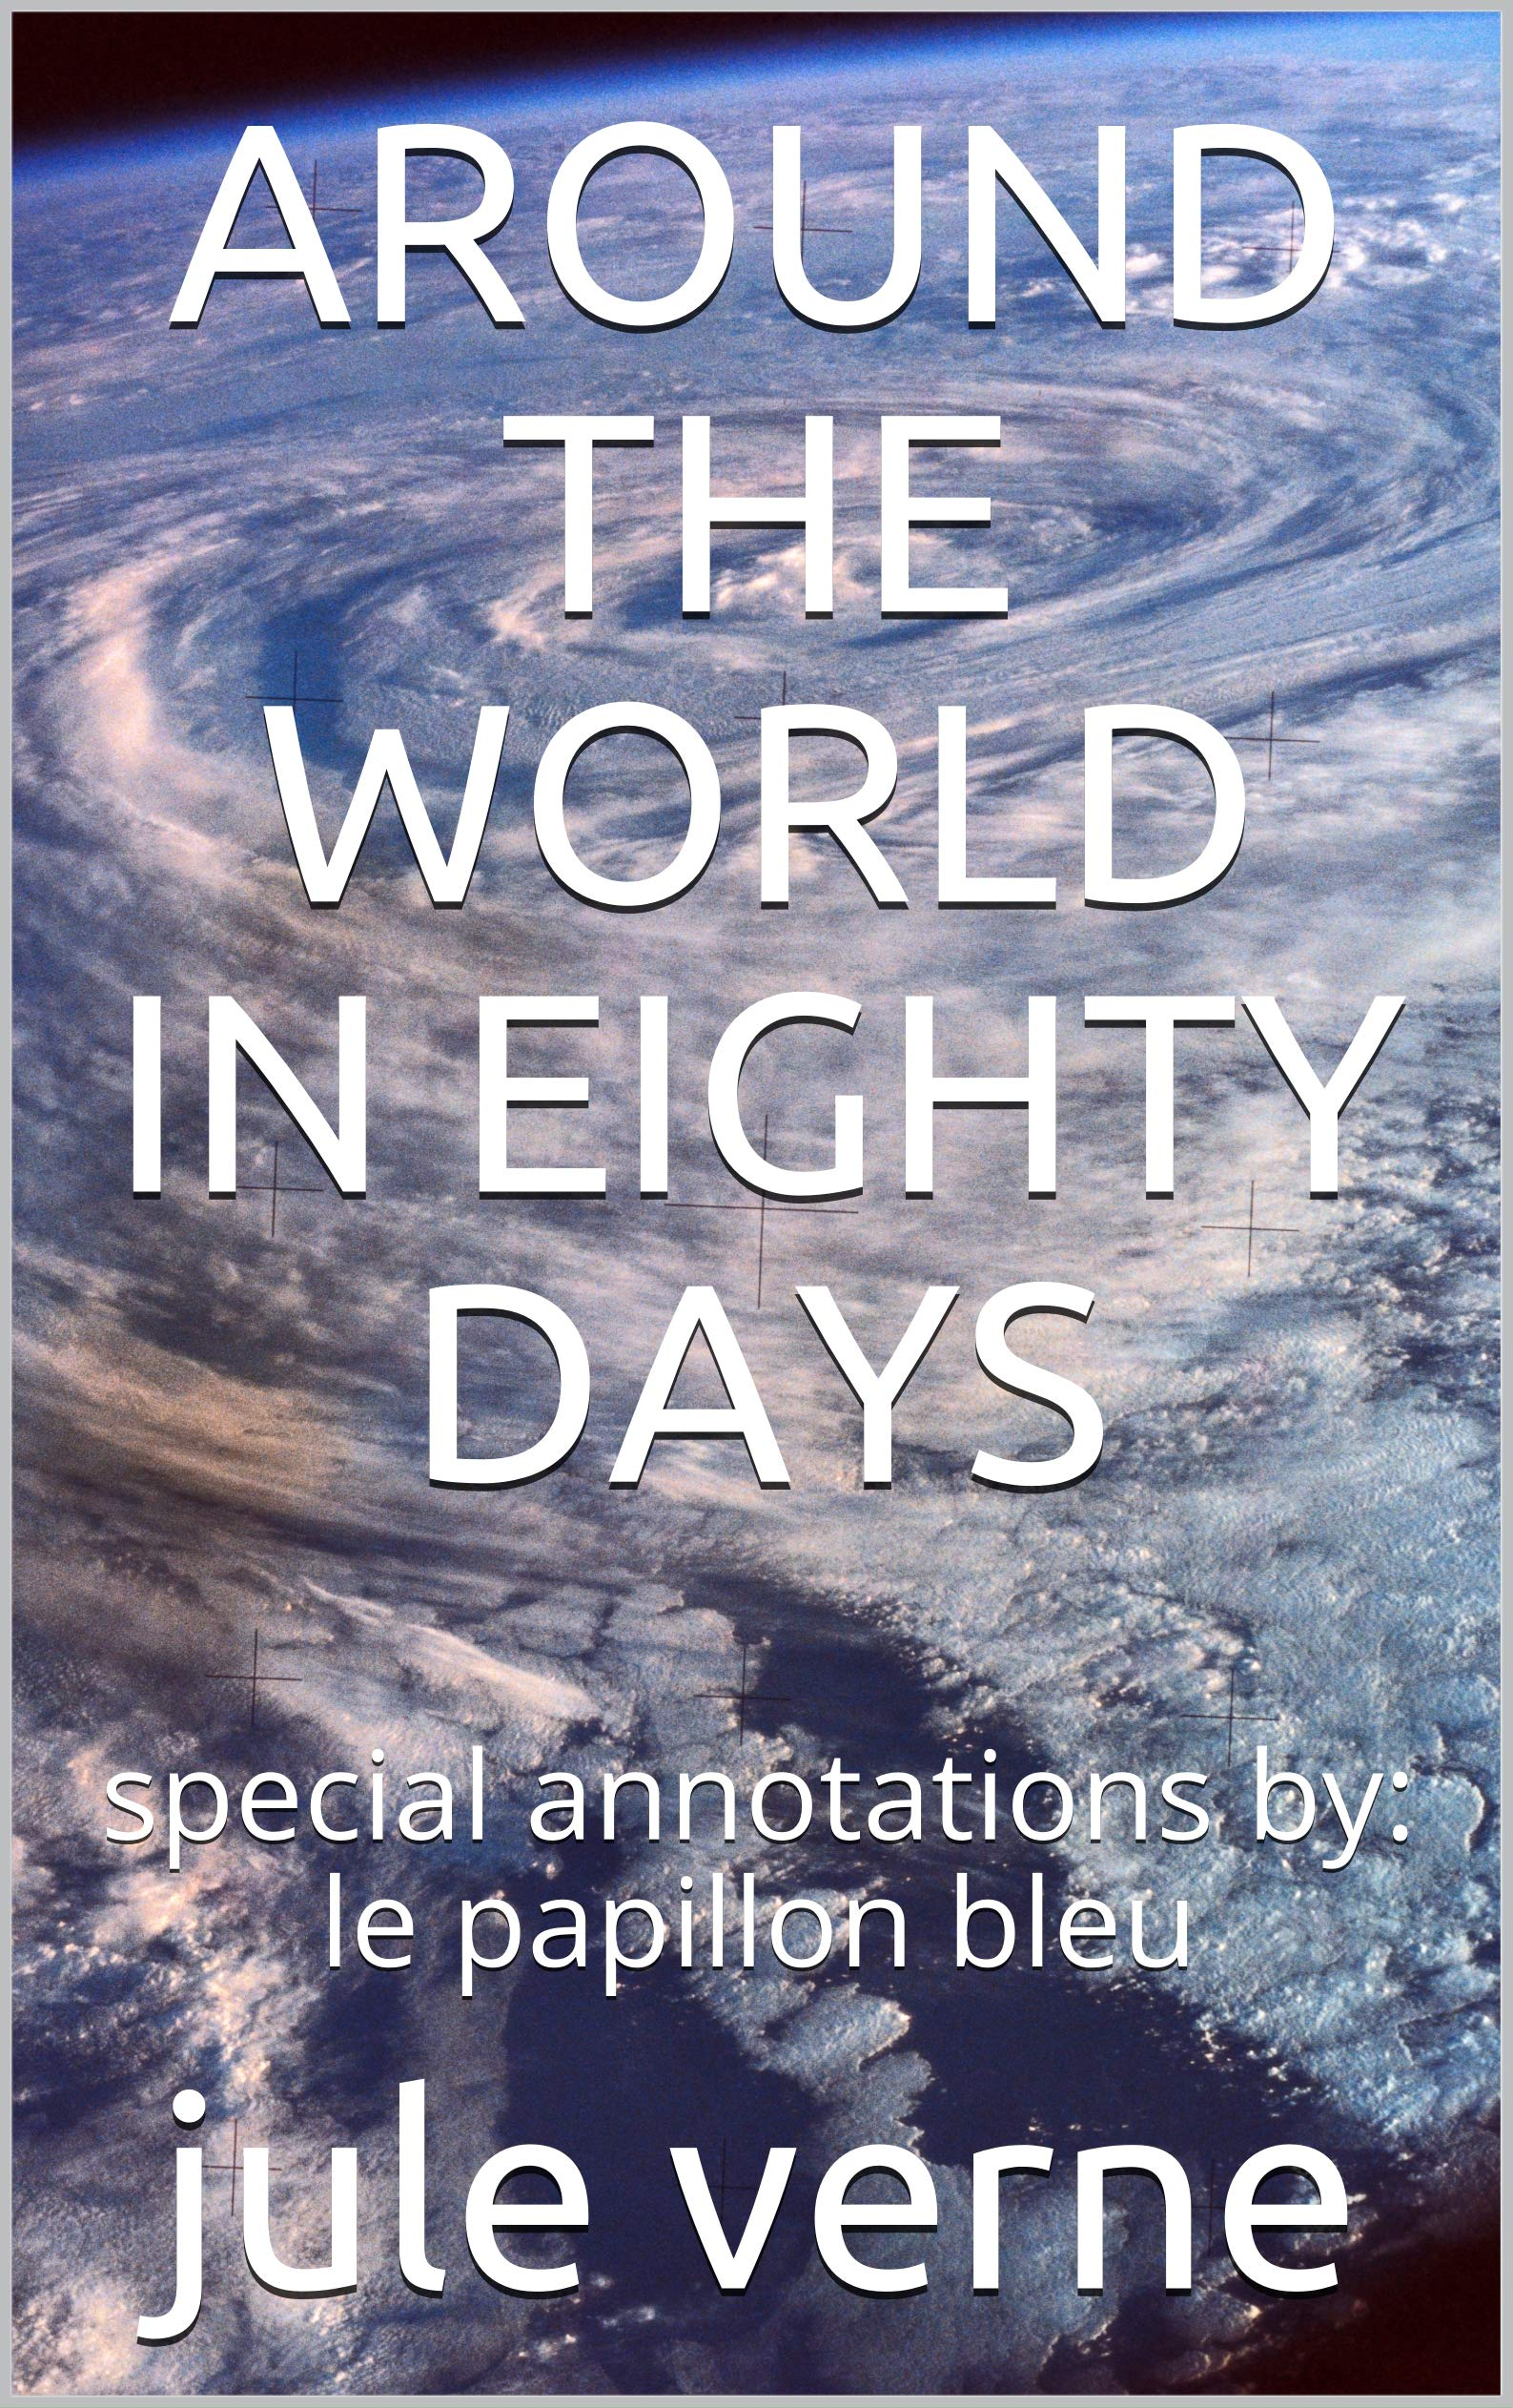 AROUND THE WORLD IN EIGHTY DAYS: special annotations by: le papillon bleu